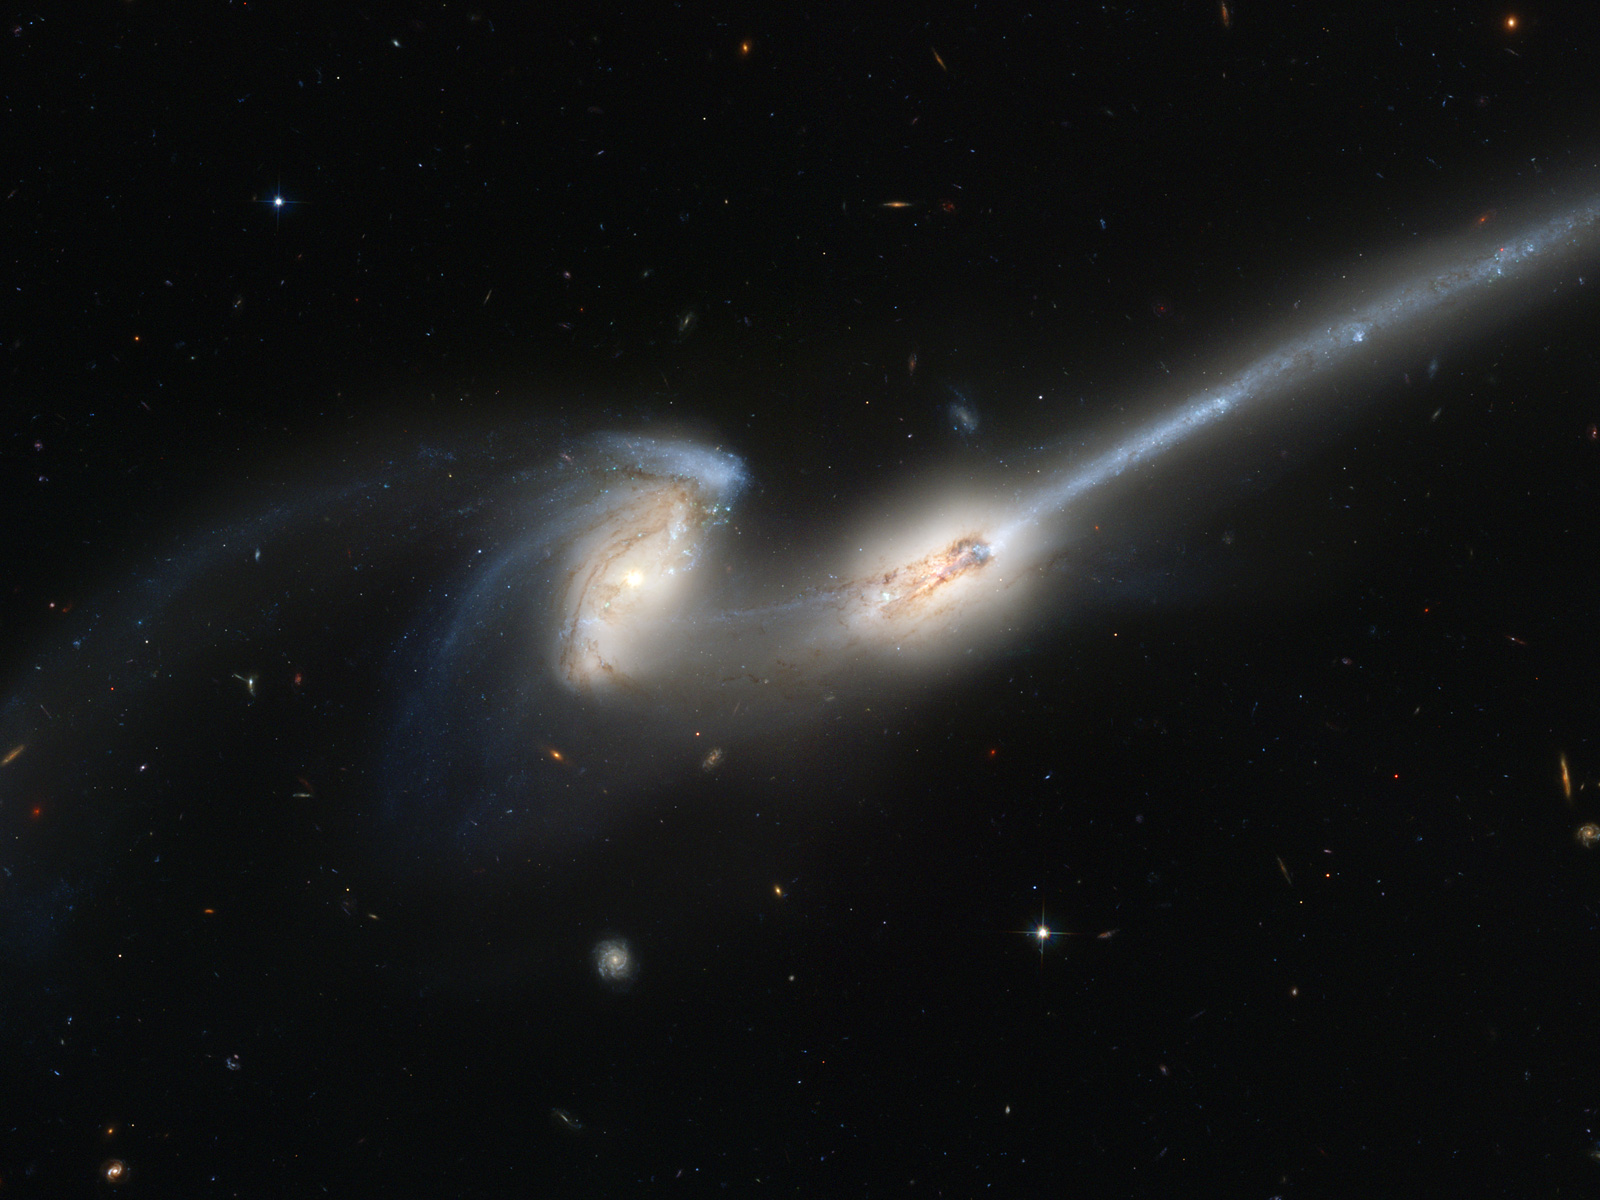 hubble space com - photo #17